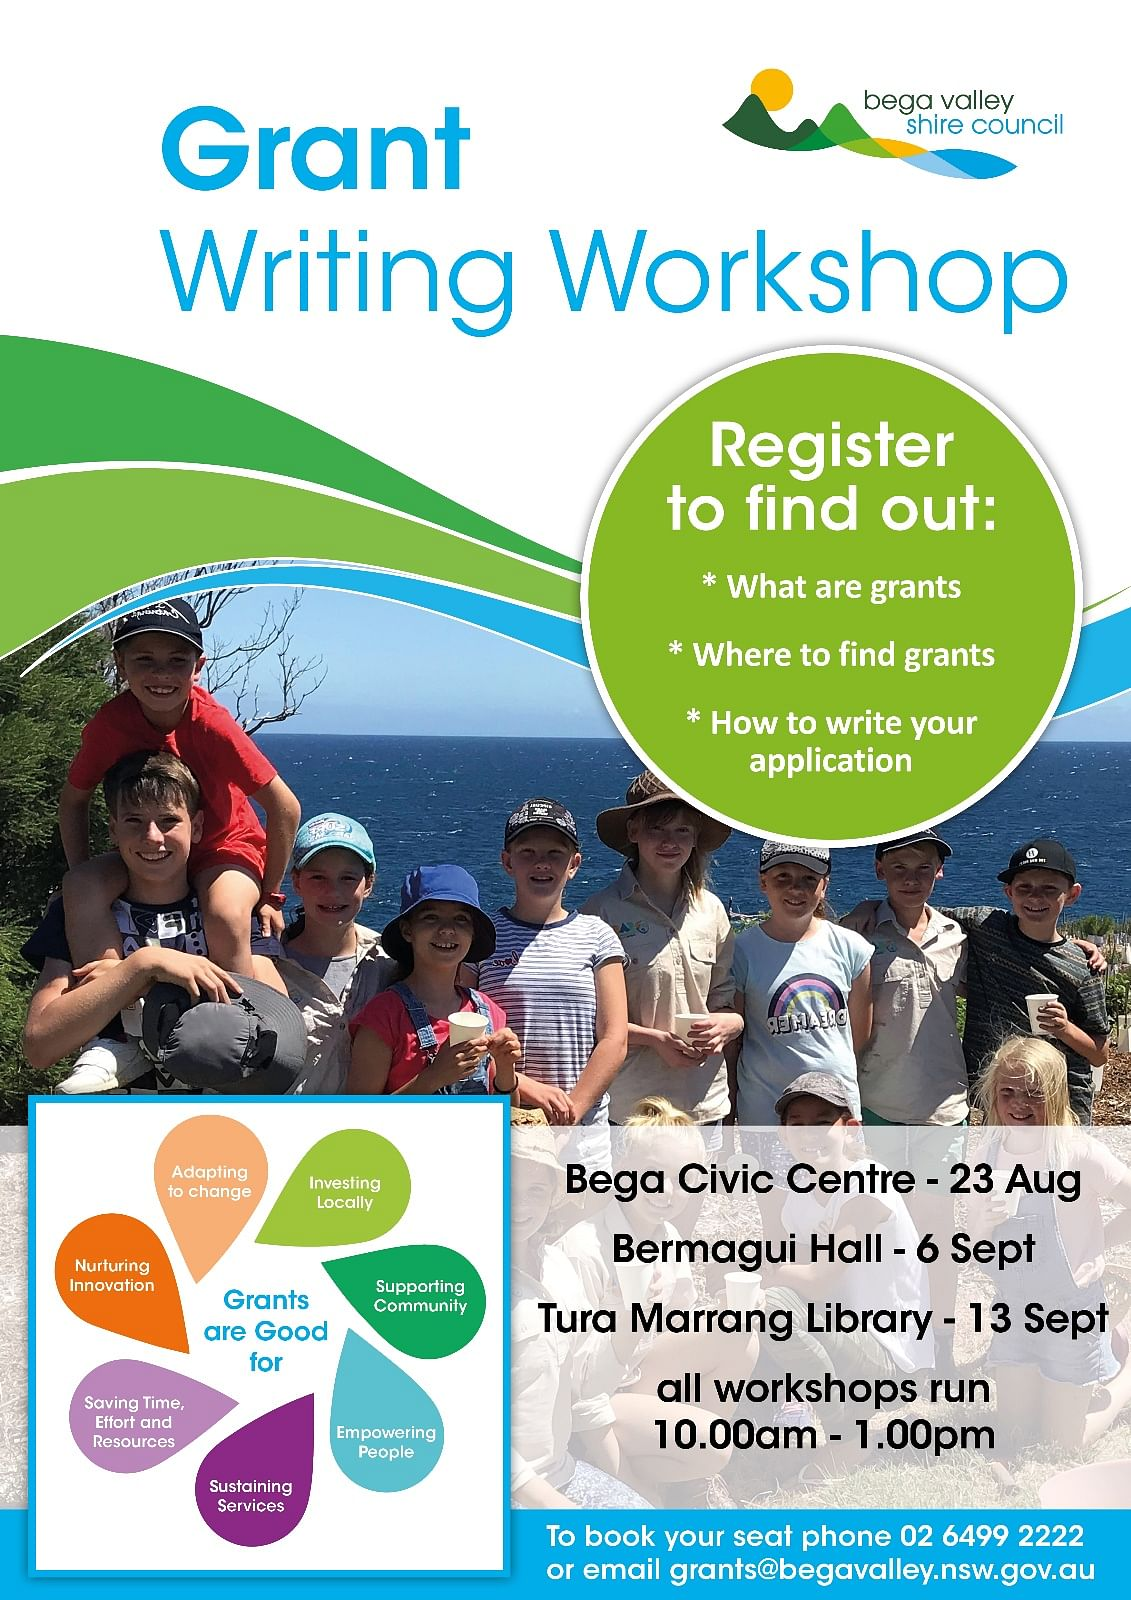 Poster includes venues and dates of grant writing workshops.